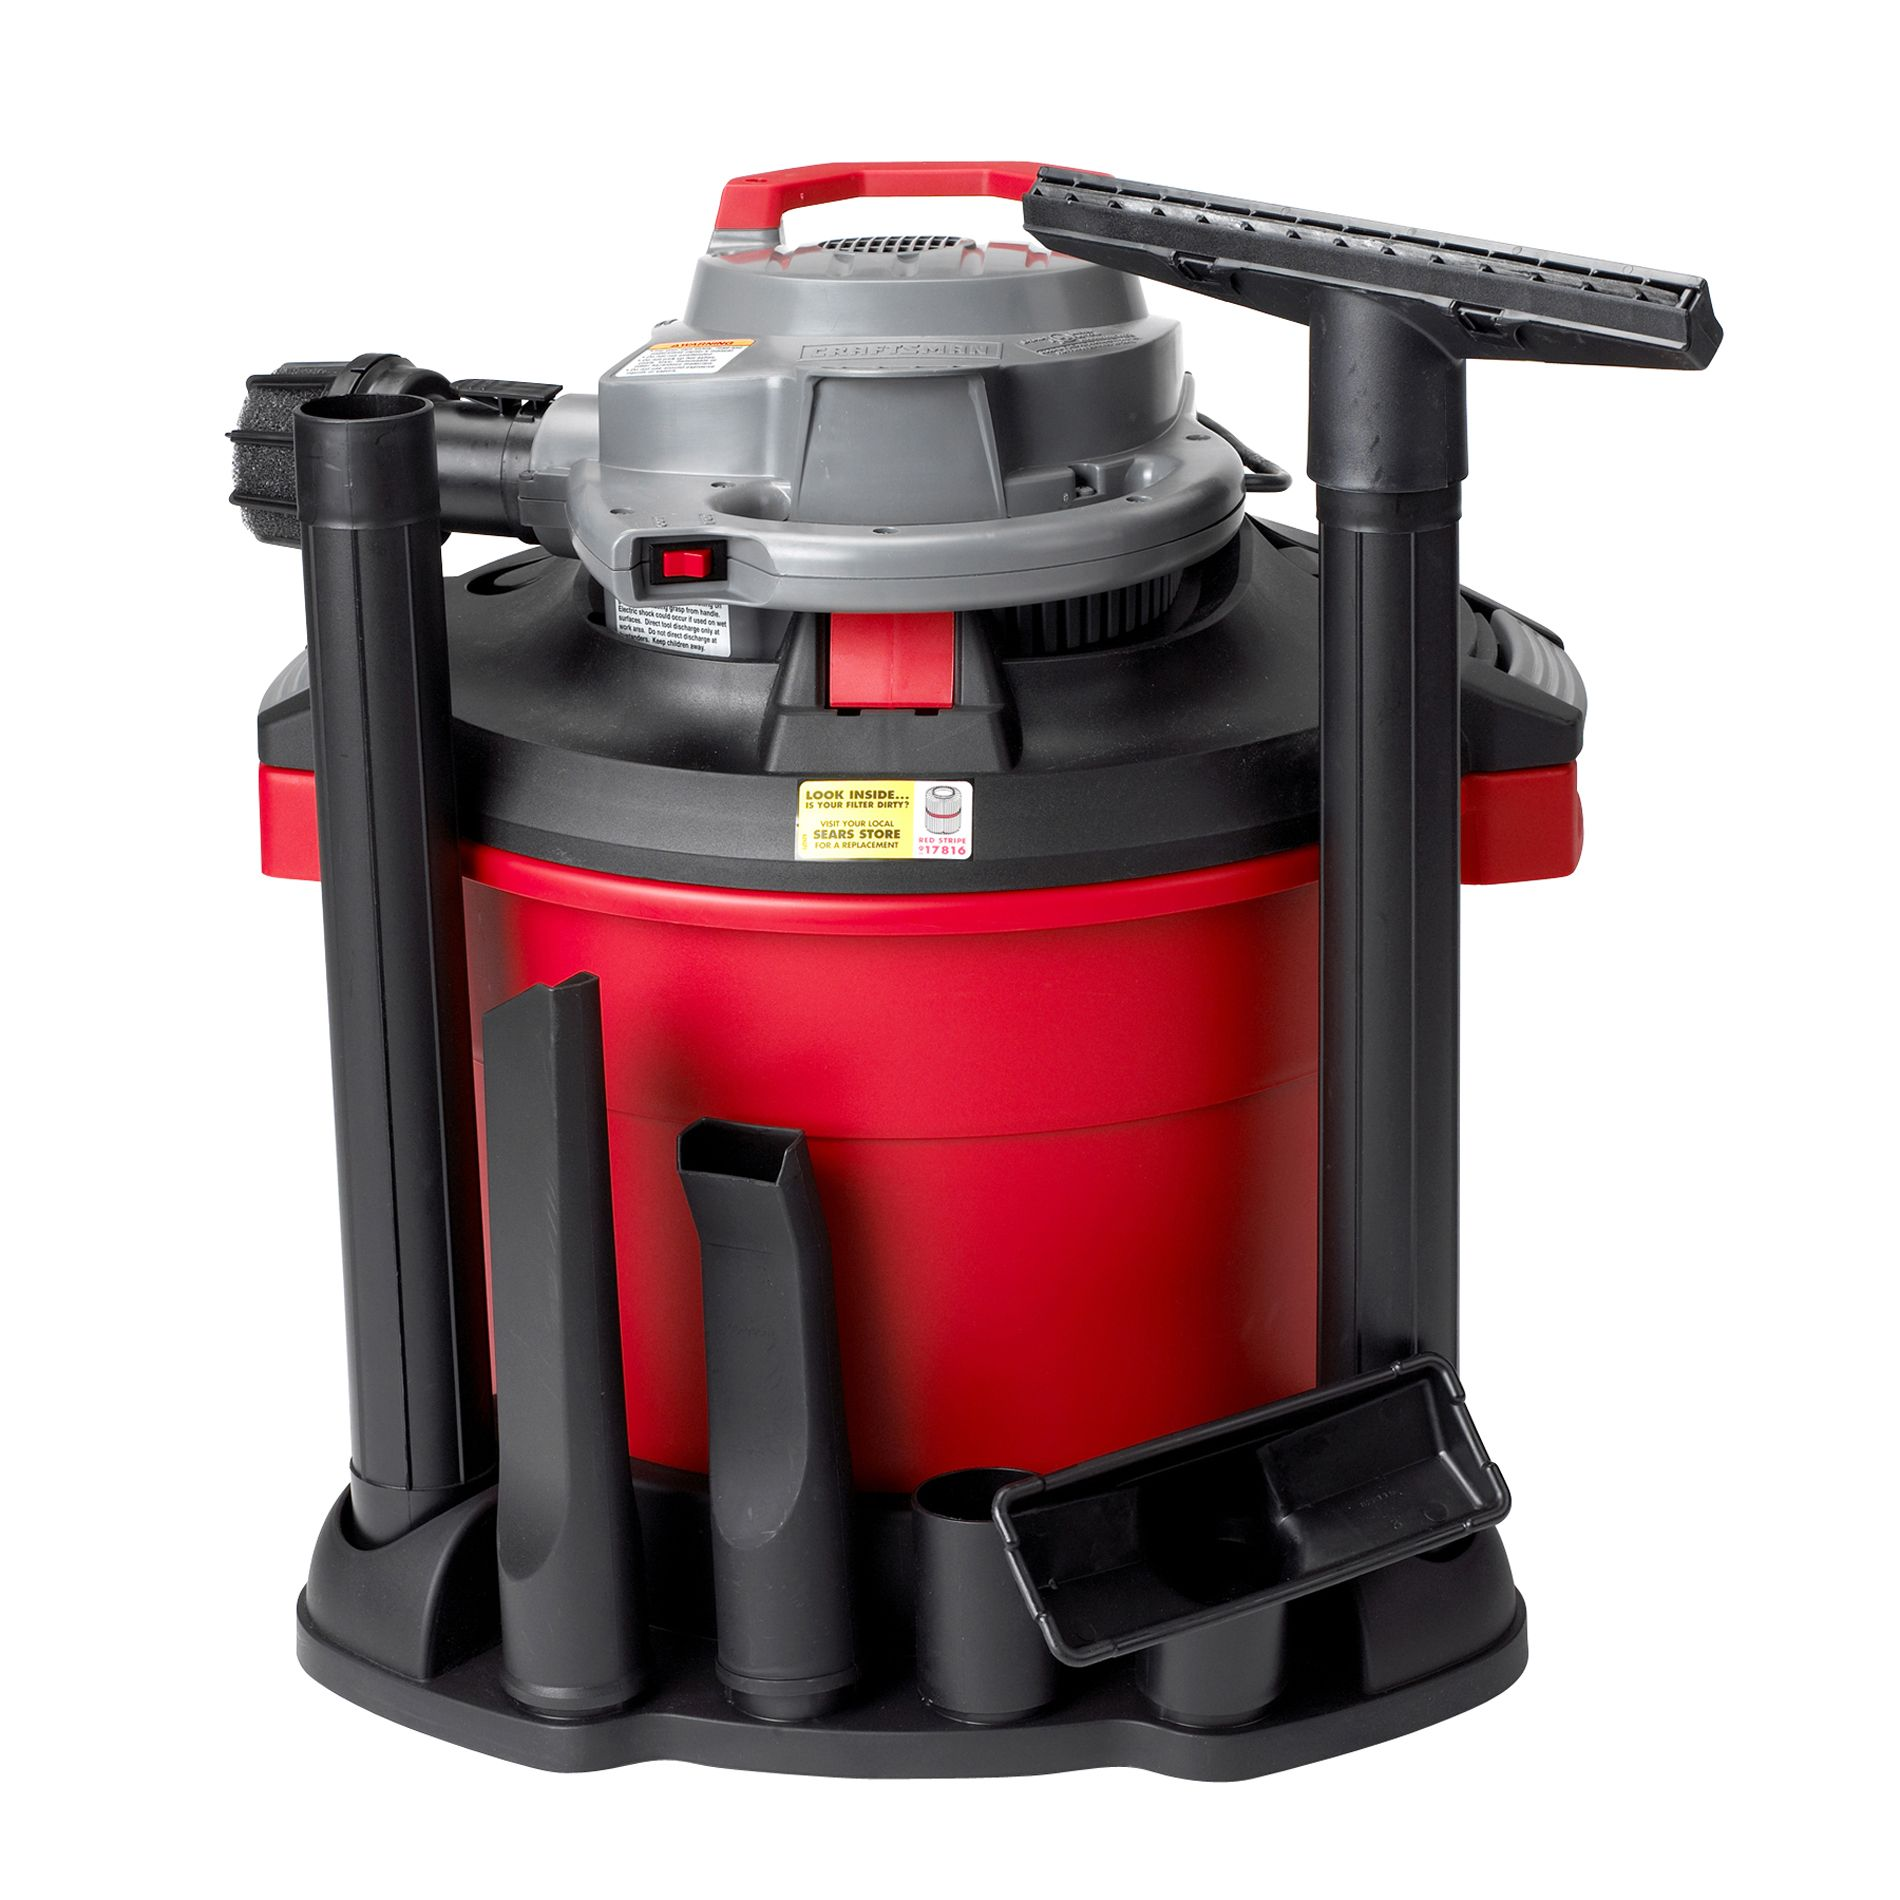 Craftsman Wet Dry Vac Parts >> CRAFTSMAN WET/DRY VAC Parts | Model 113170660 | Sears PartsDirect